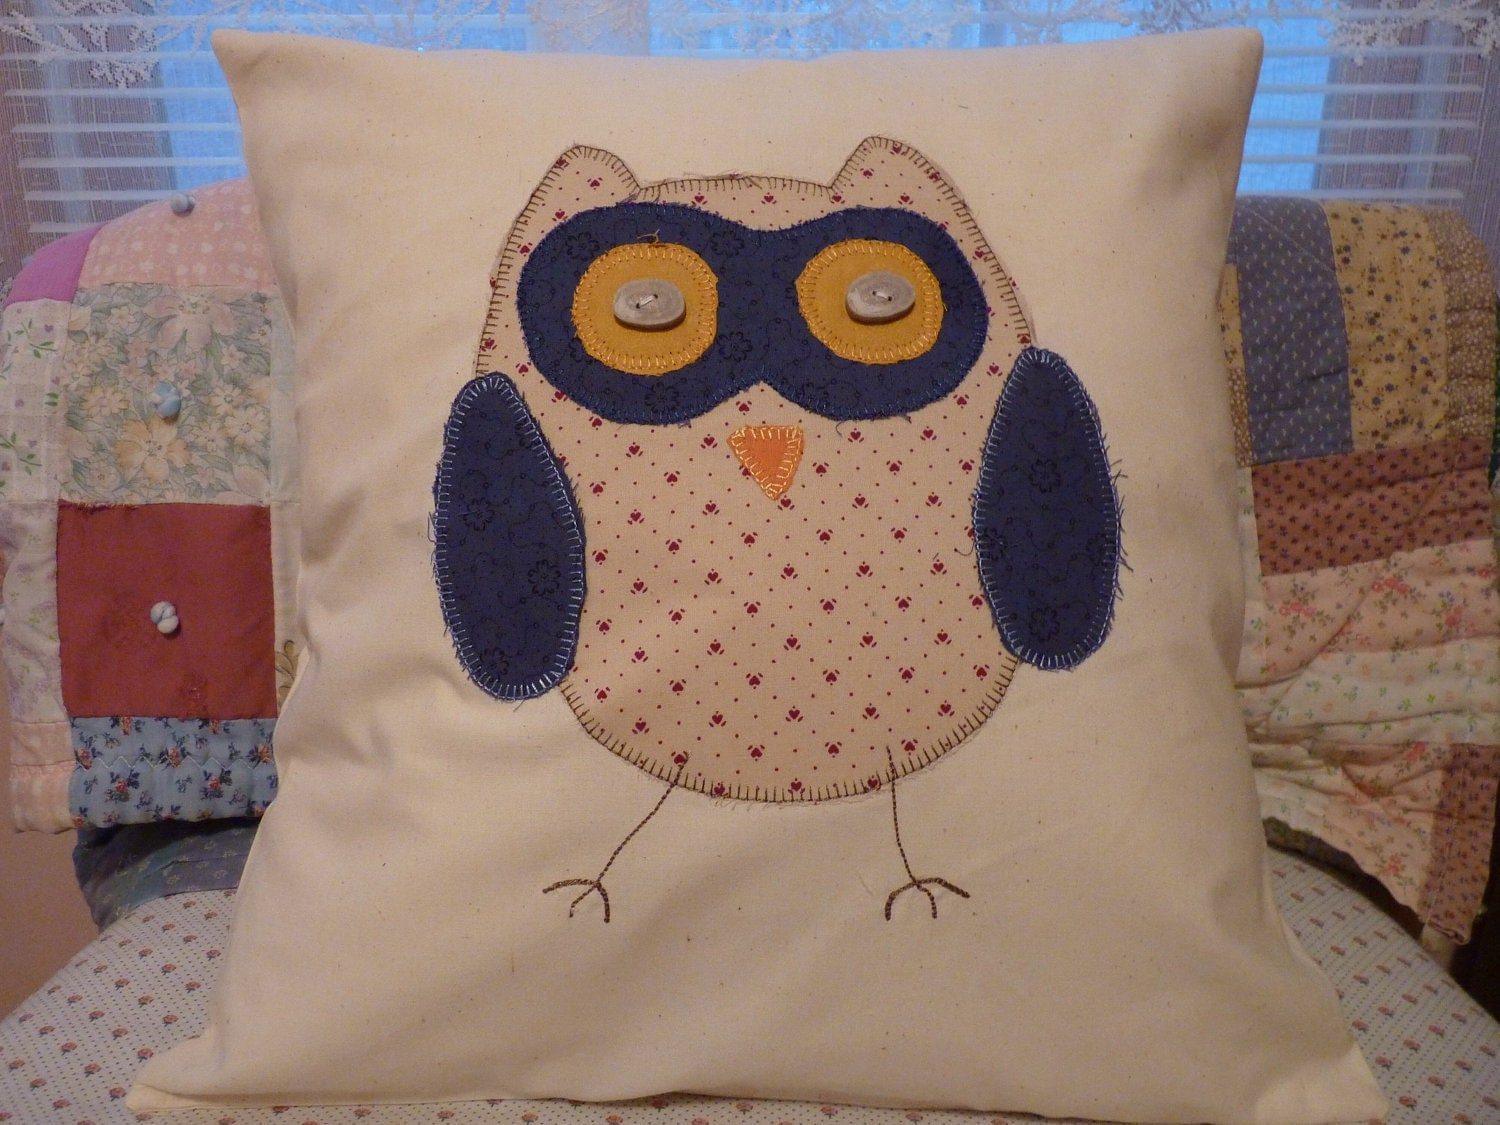 Owl Throw Pillow Etsy : Appliqued Owl Throw Pillow by SugarHillEnterprises on Etsy